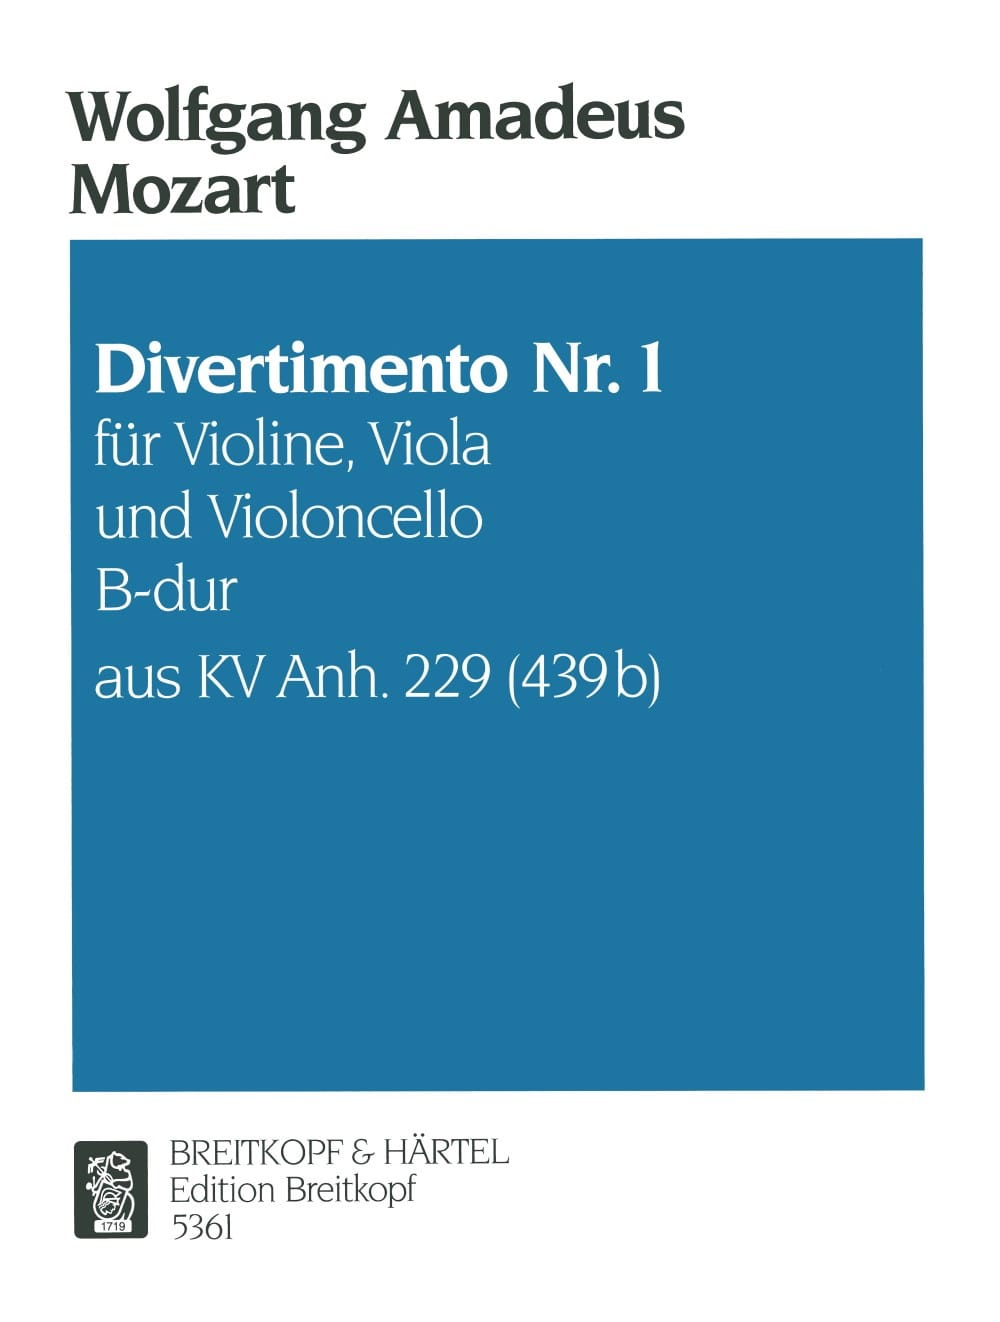 MOZART - Divertimento Nr.1 B-Hard KV Anh. 229 - Violine Viola Cello - Stimmen - Partition - di-arezzo.co.uk